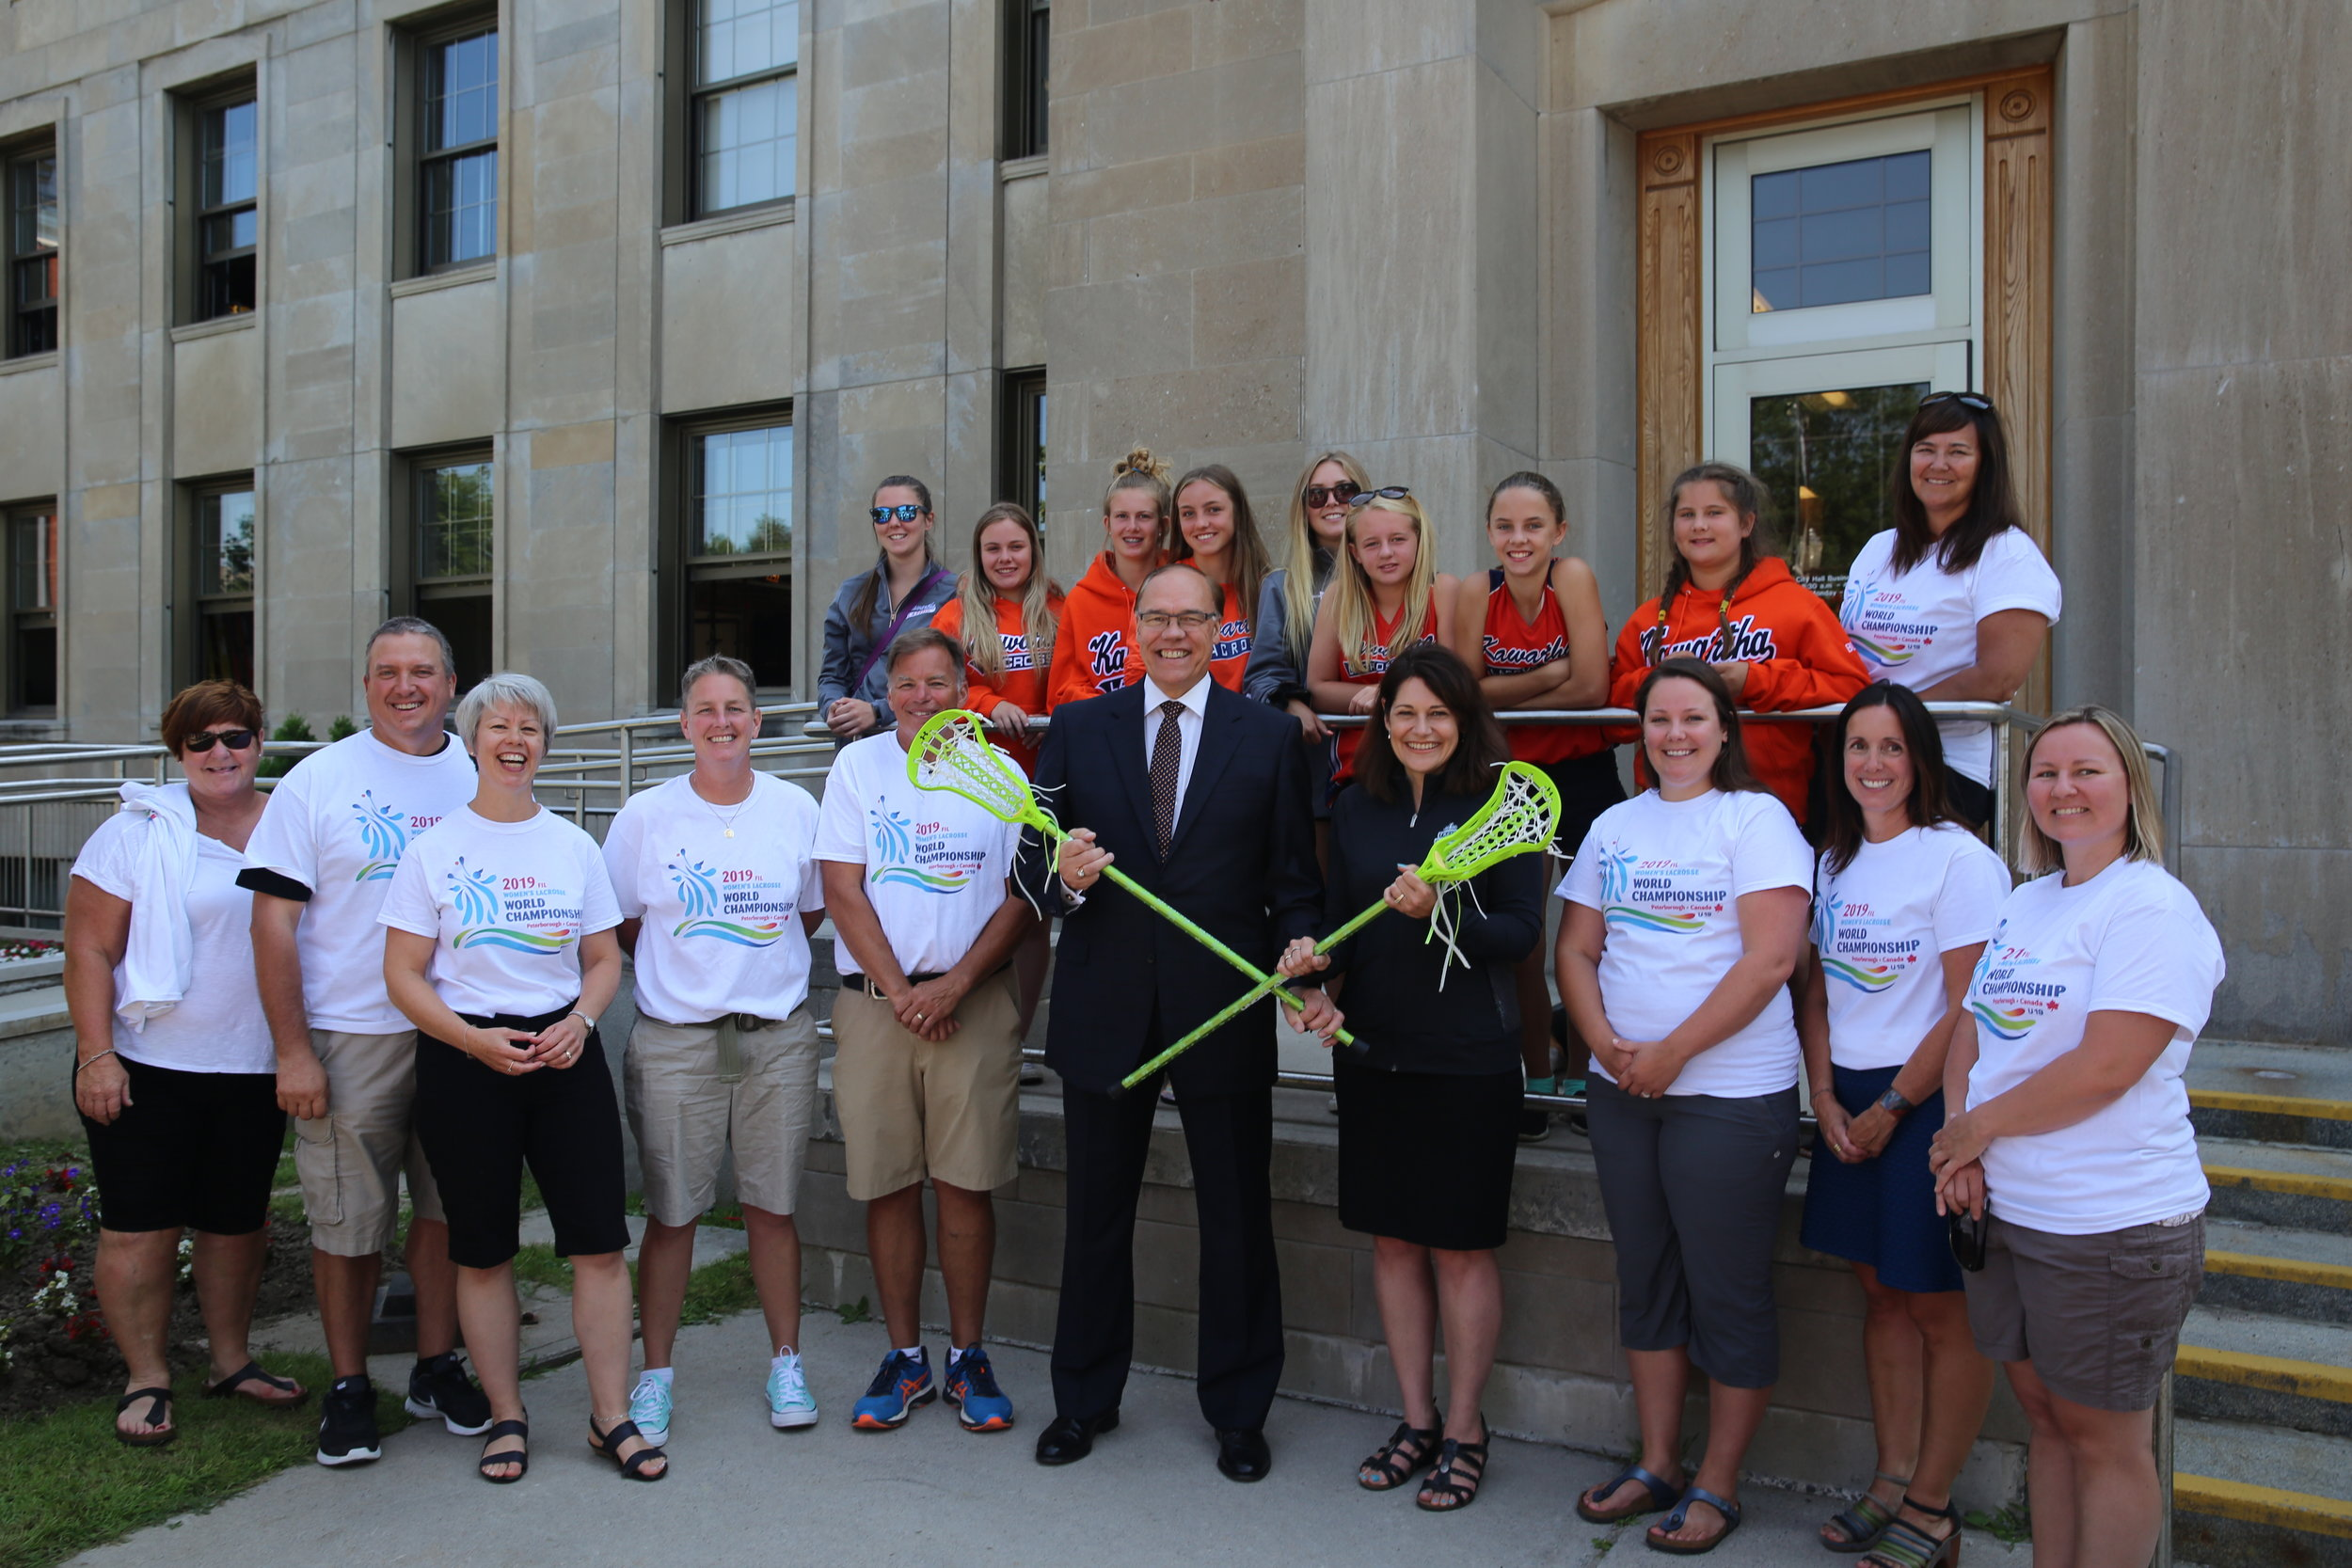 Photo from press launch at City Hall courtesy Trent University